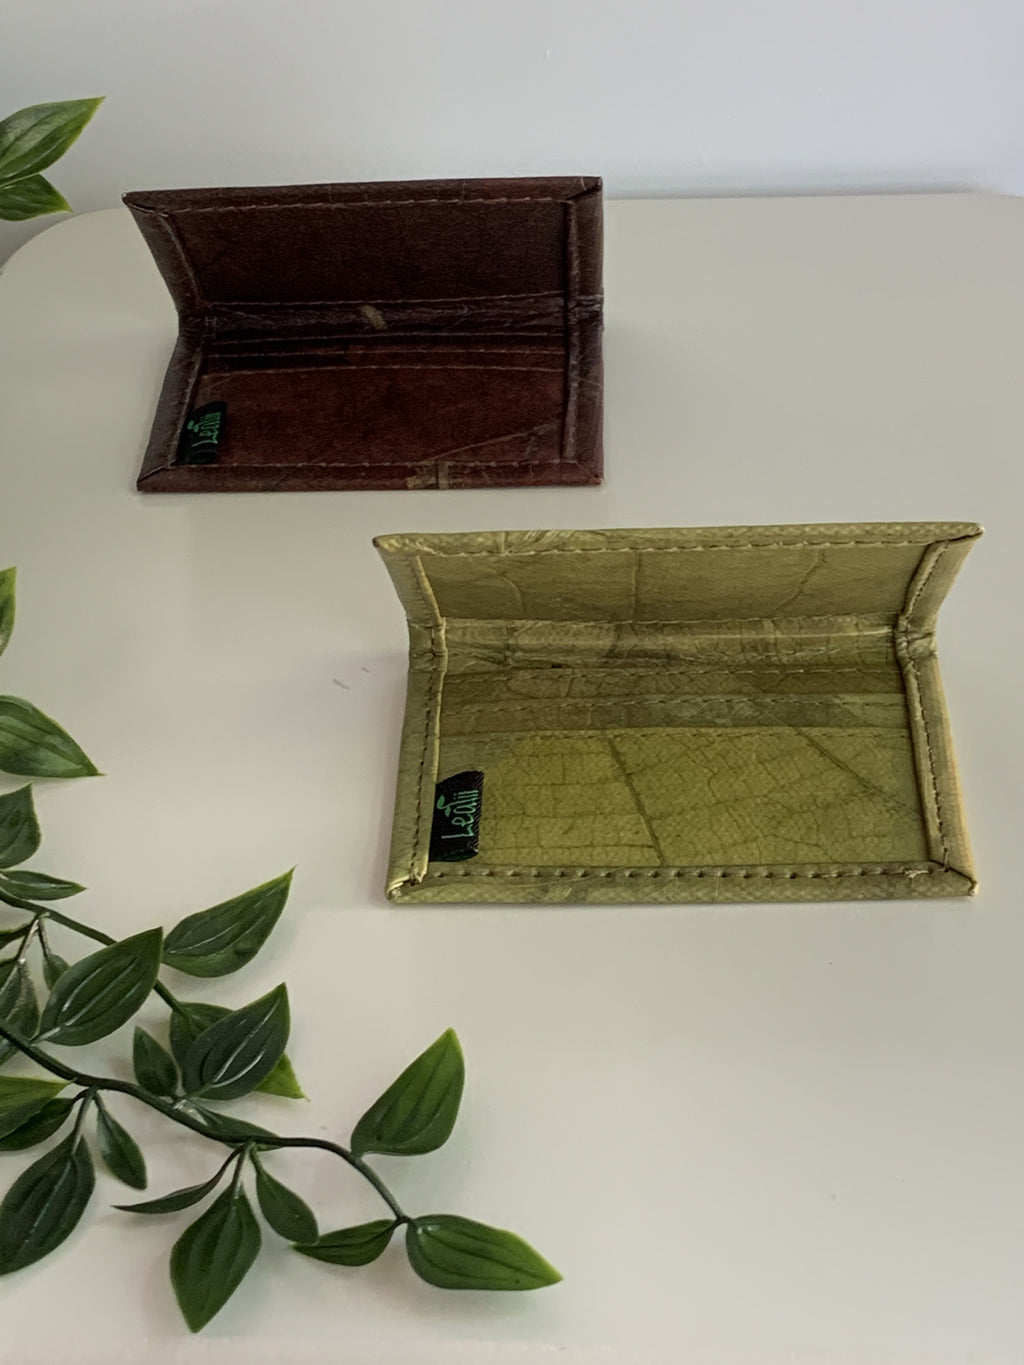 Vegan Leaf Leather Credit Card Holder